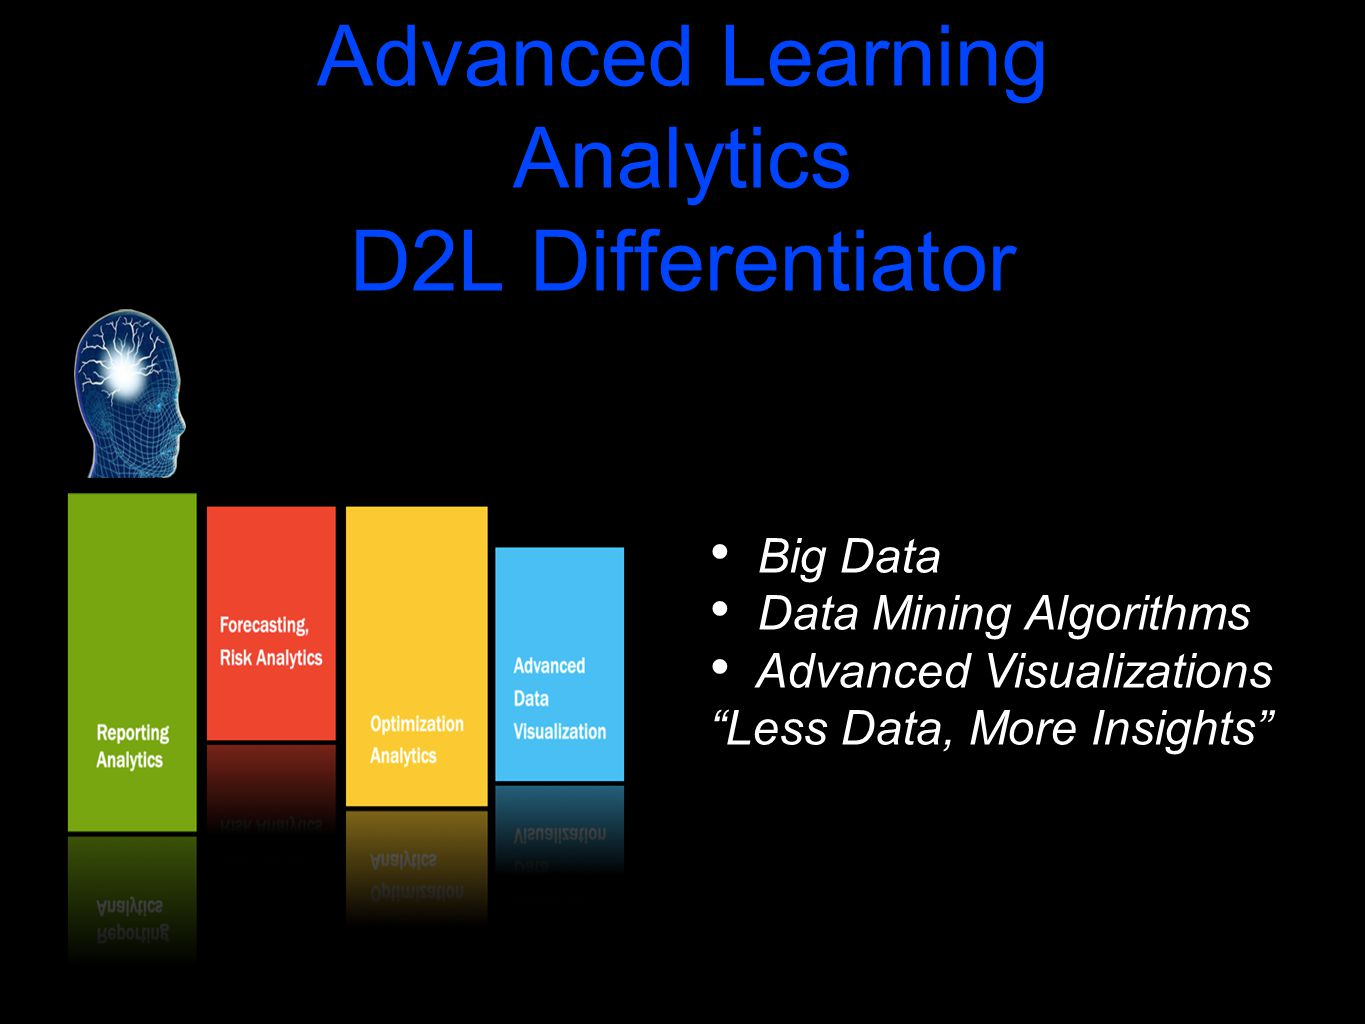 Advanced Learning Analytics D2L Differentiator Big Data Data Mining Algorithms Advanced Visualizations Less Data, More Insights